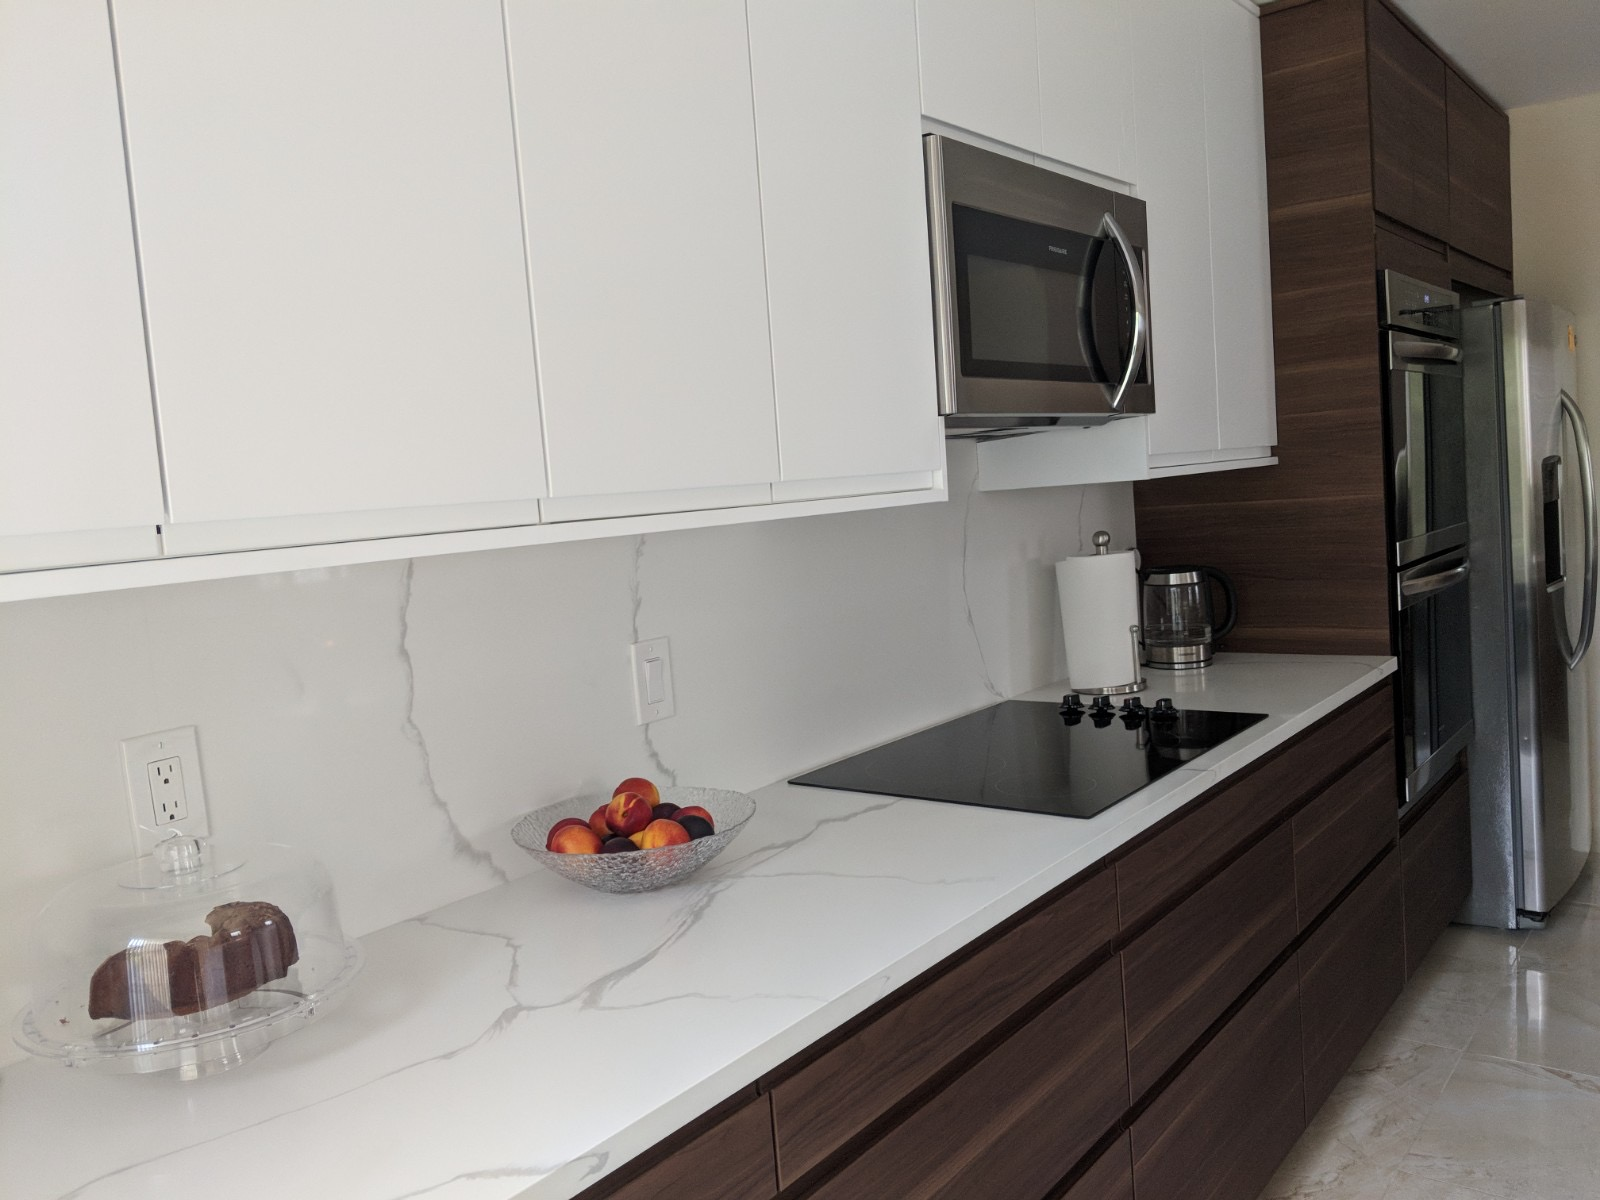 ikea kitchen installer Boca Raton d3